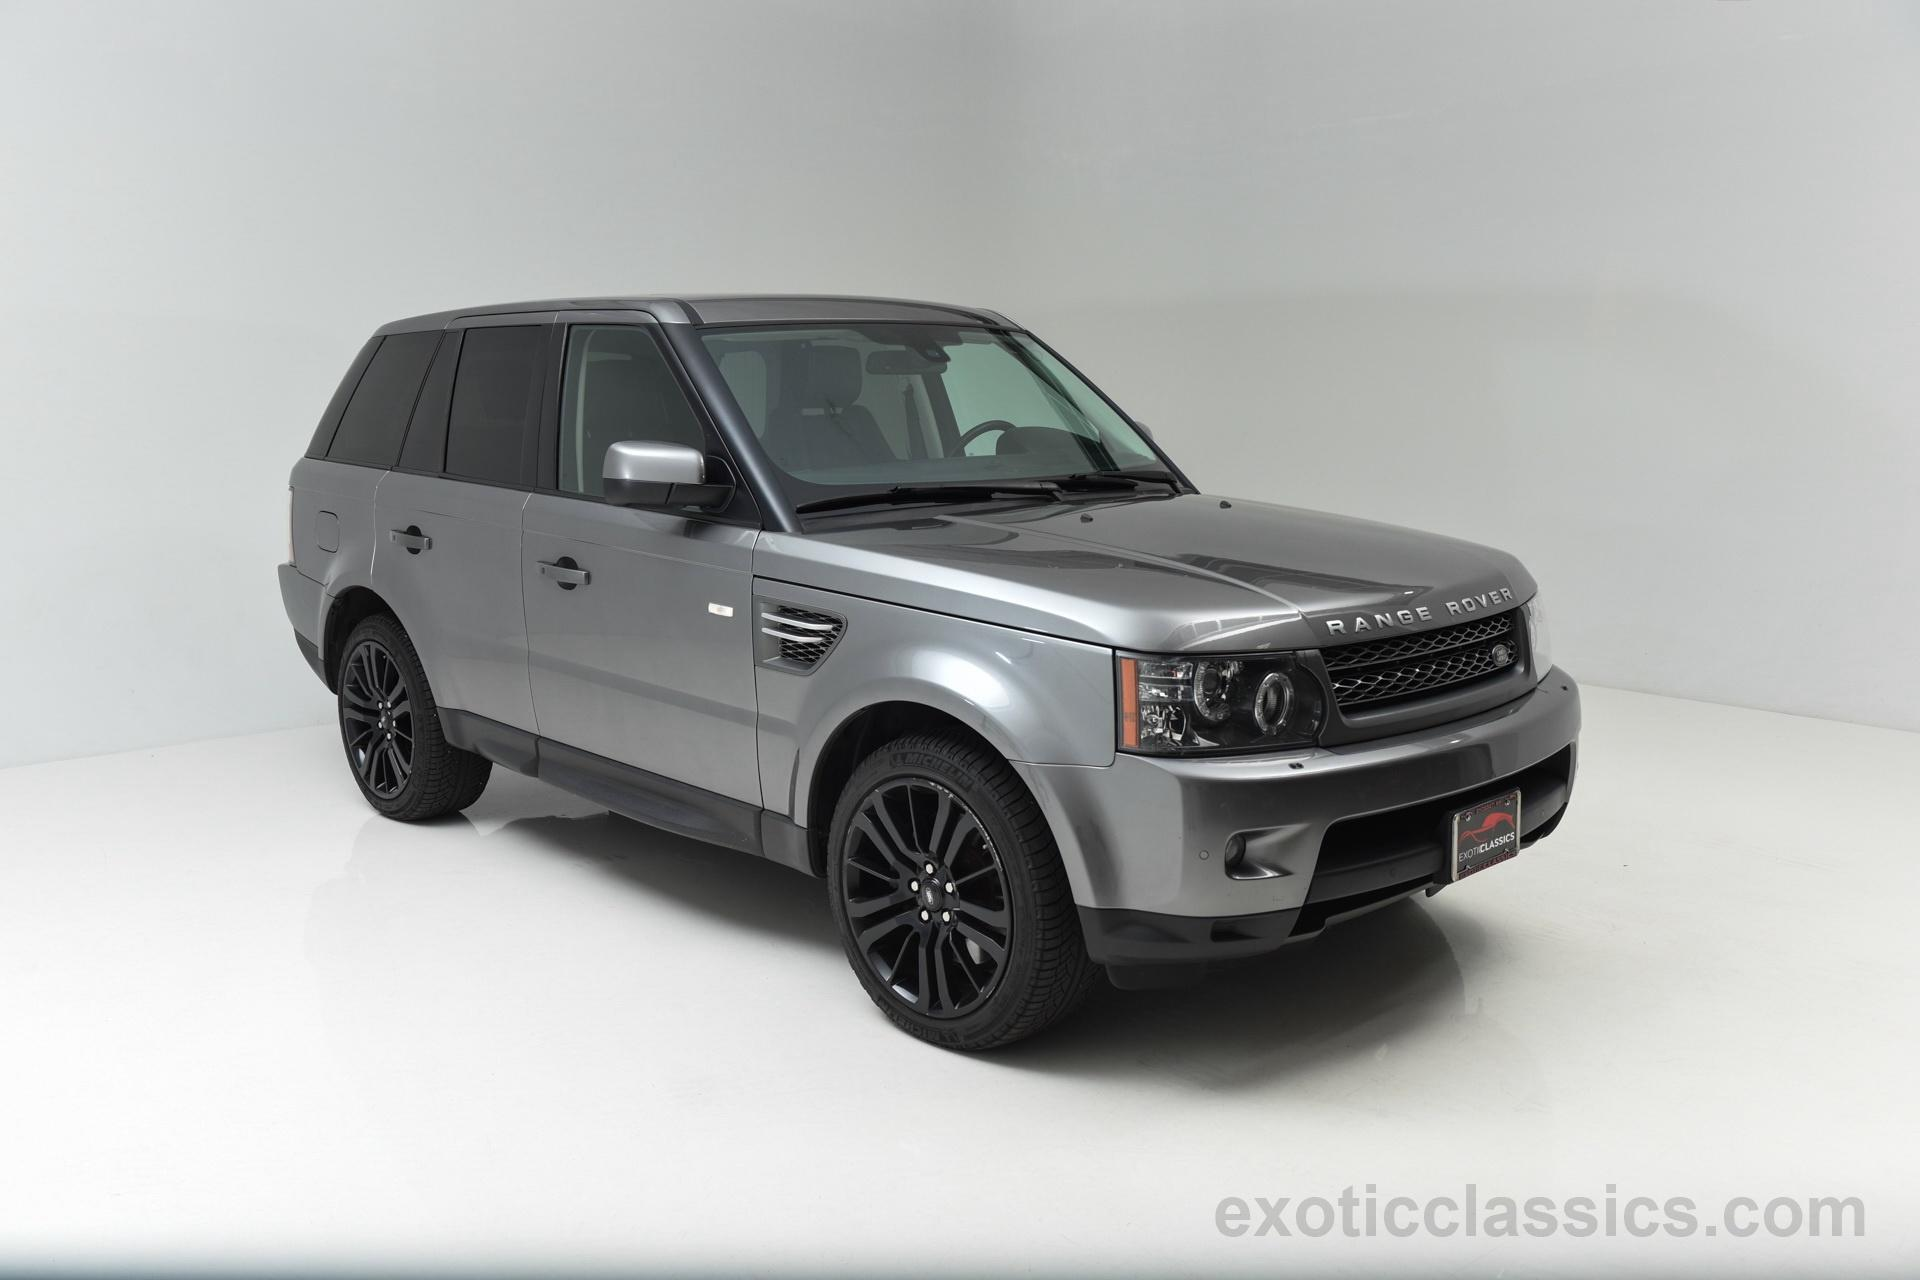 2011 land rover range rover sport hse exotic classic car. Black Bedroom Furniture Sets. Home Design Ideas